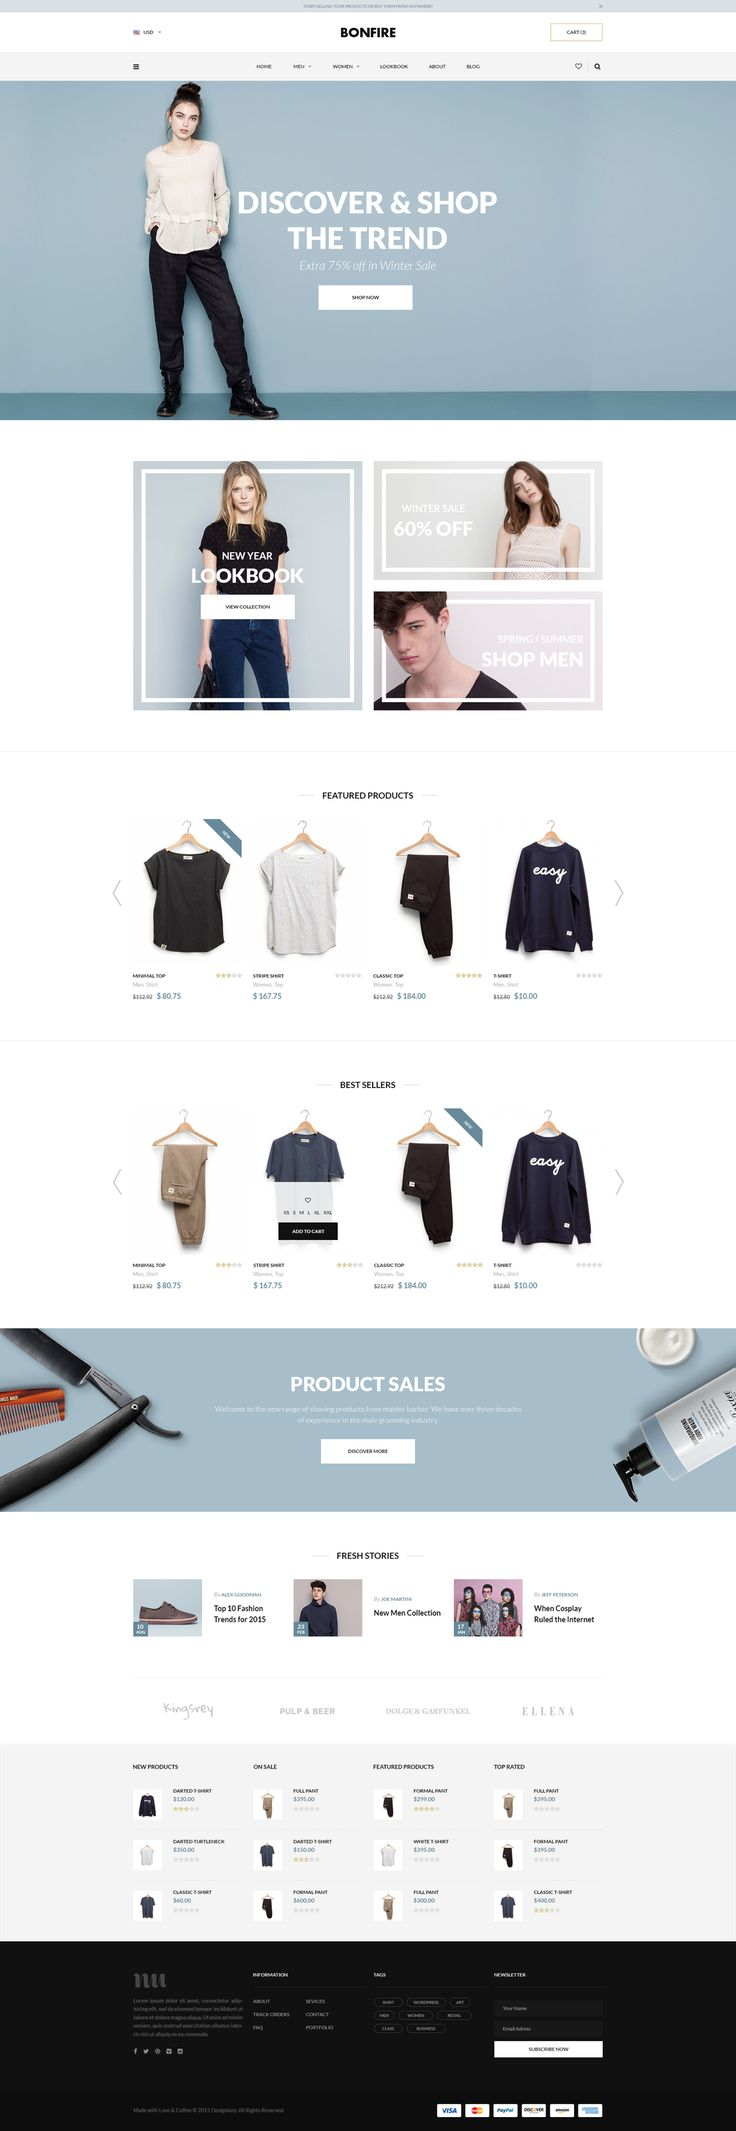 E-commerce web-site